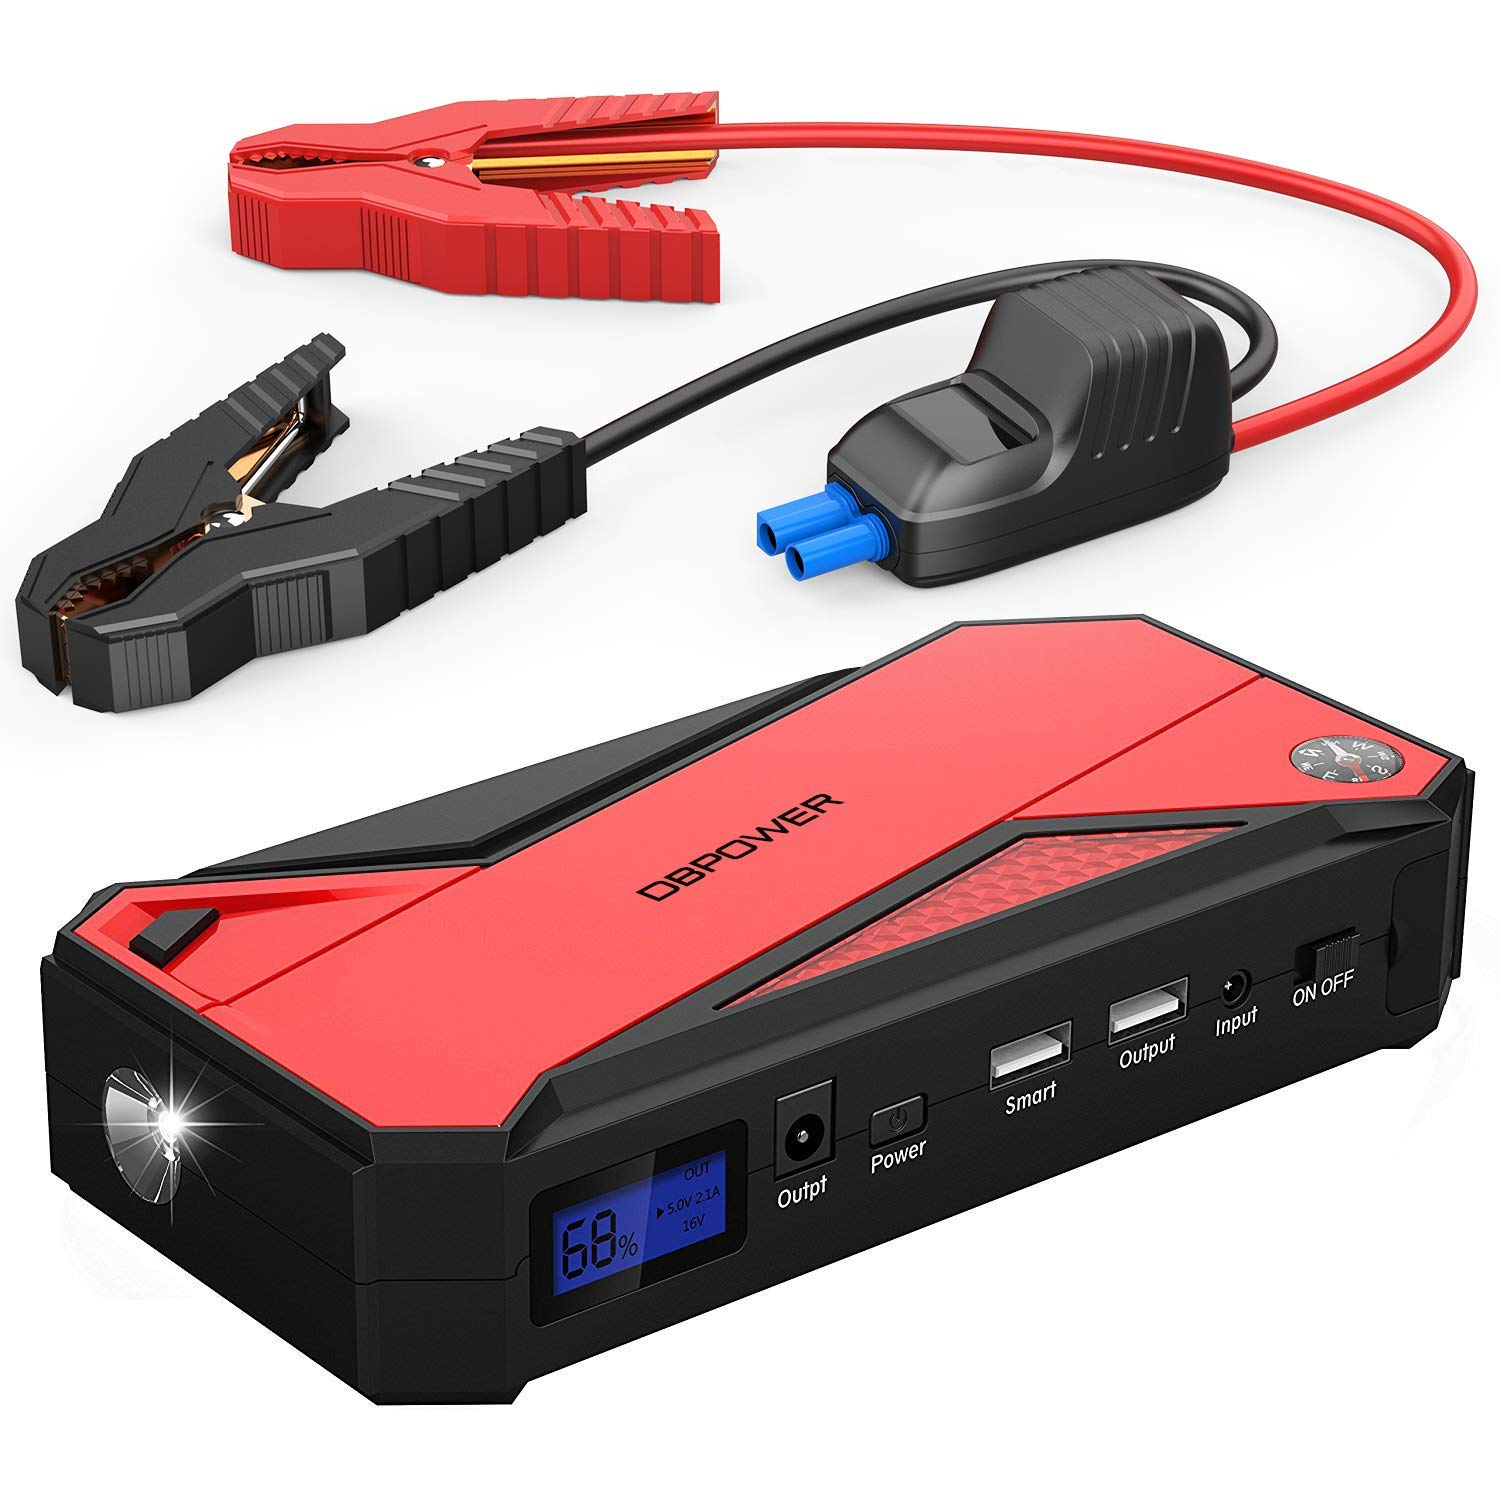 DBPOWER 600A Peak 18000mAh Portable Car Jump Starter (up to 6.5L Gas/5.2L Diesel Engine) Portable Battery Booster with Smart Charging Port, Compass, LCD Screen & LED Flashlight (Red) by DBPOWER